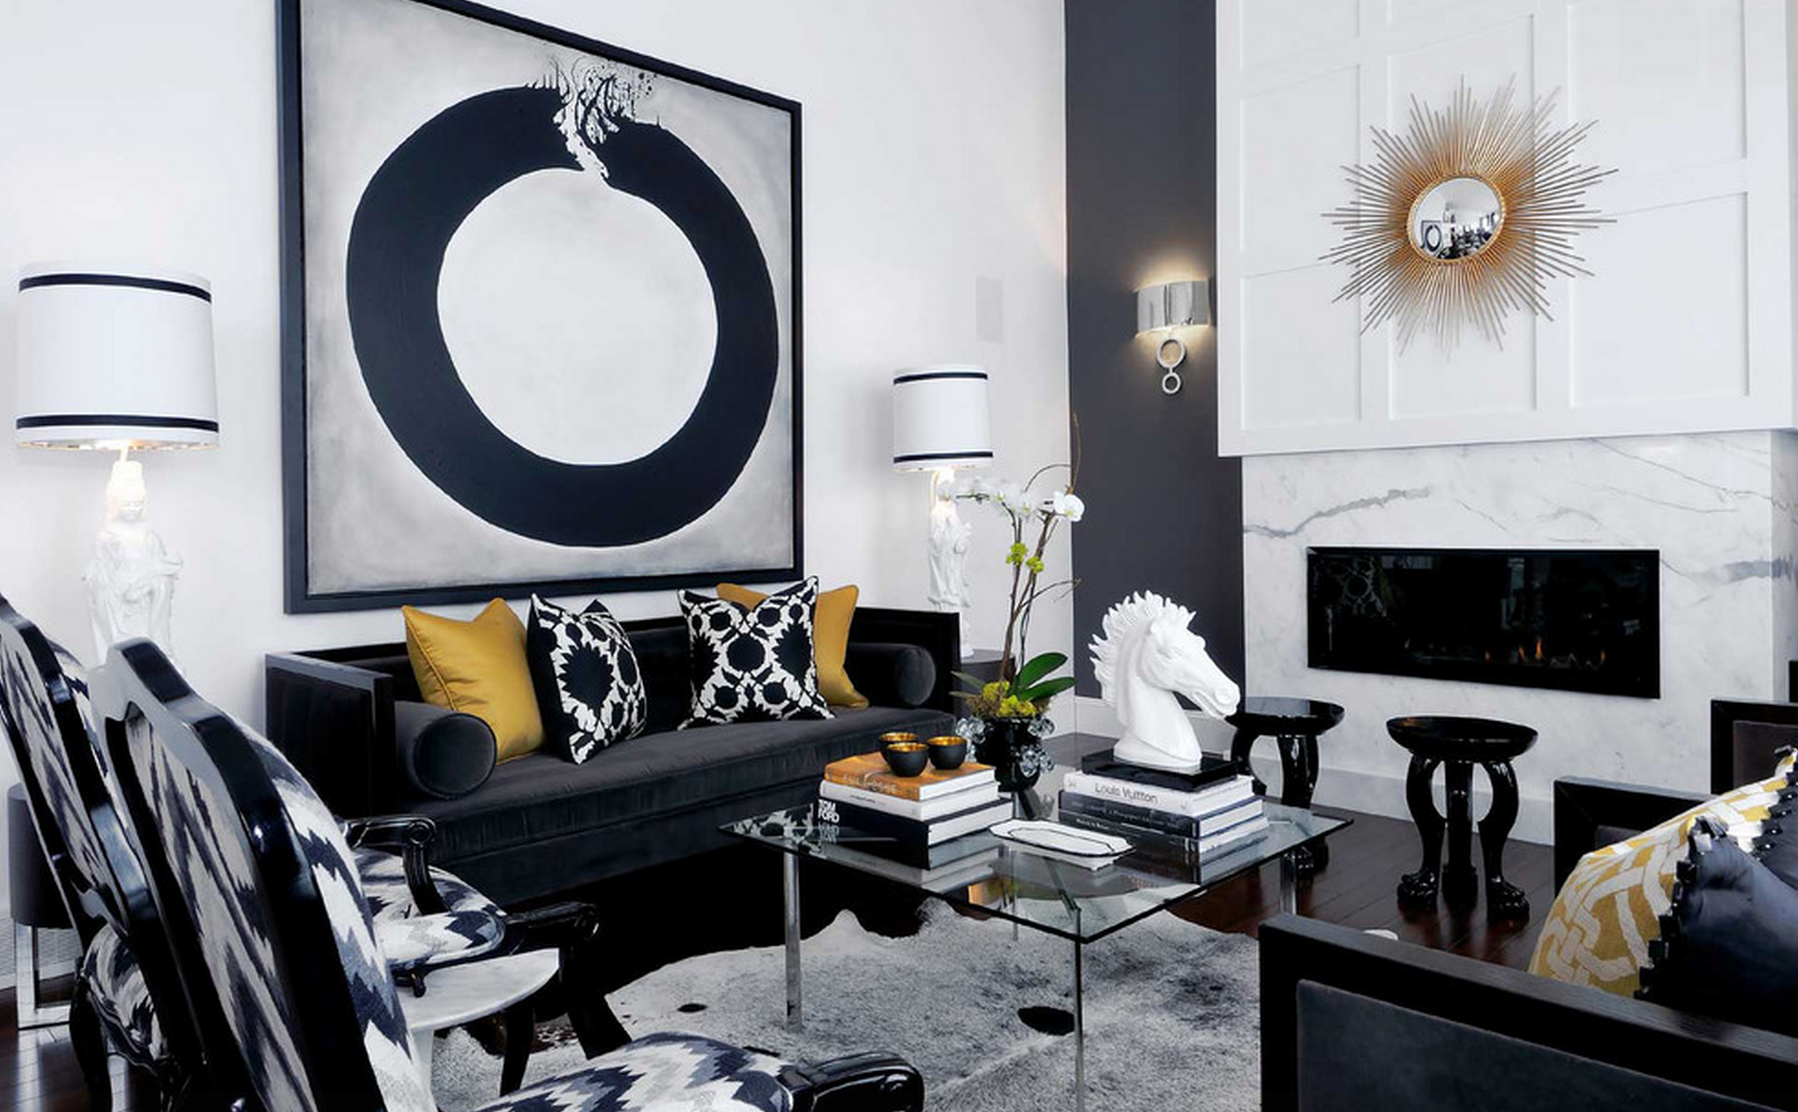 Best of Black and White Modern Living Rooms black and white modern living rooms Best of: Black and White Modern Living Rooms Best of Black and White Modern Living Rooms